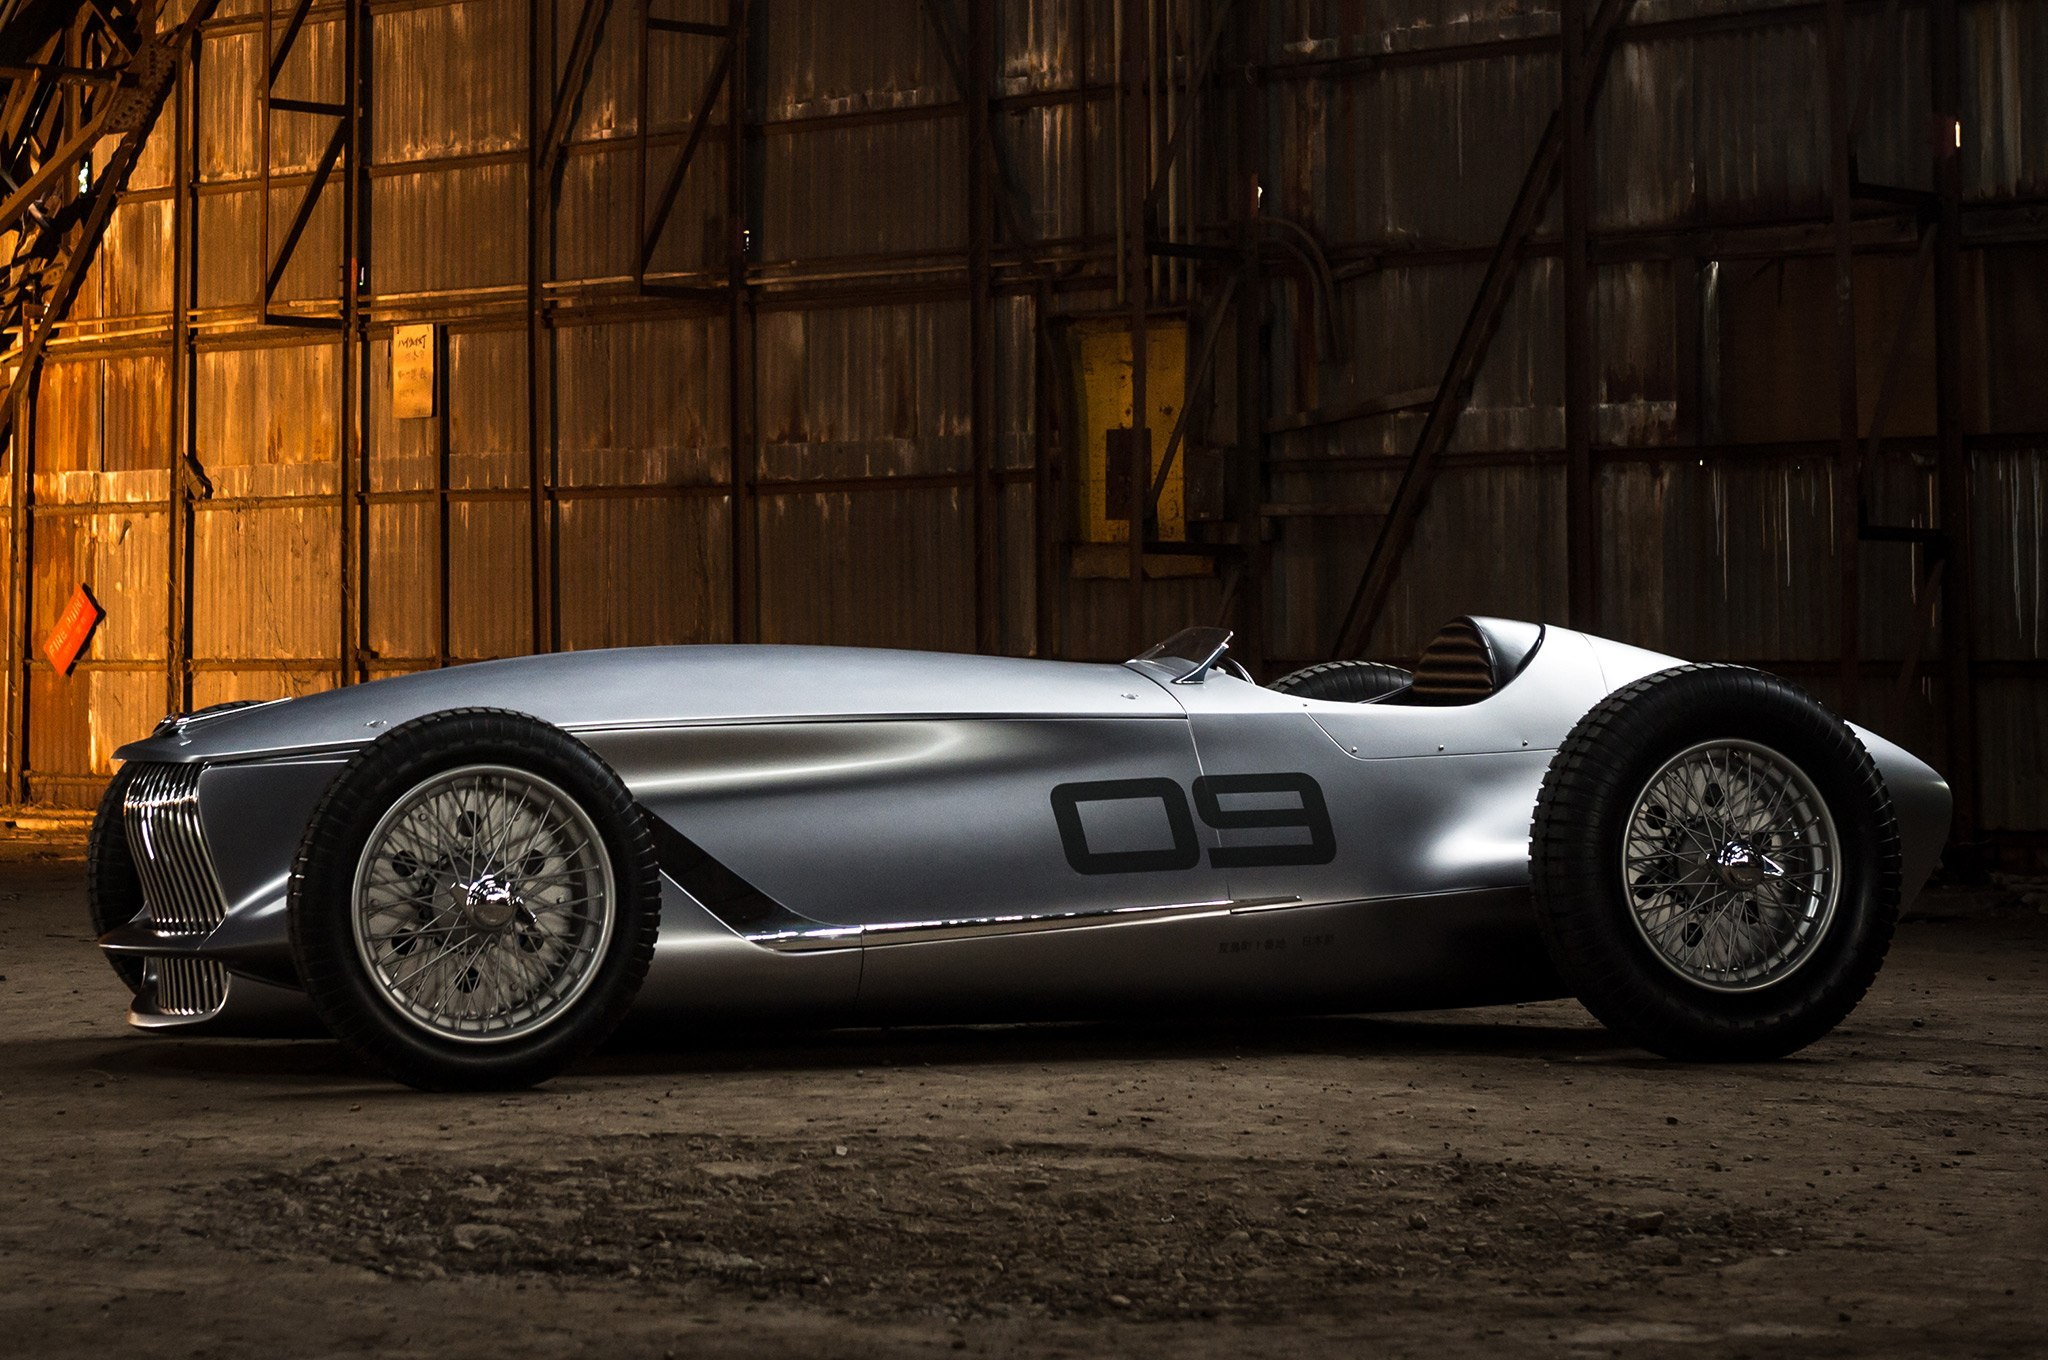 Infiniti-Prototype-9-side-view-closer